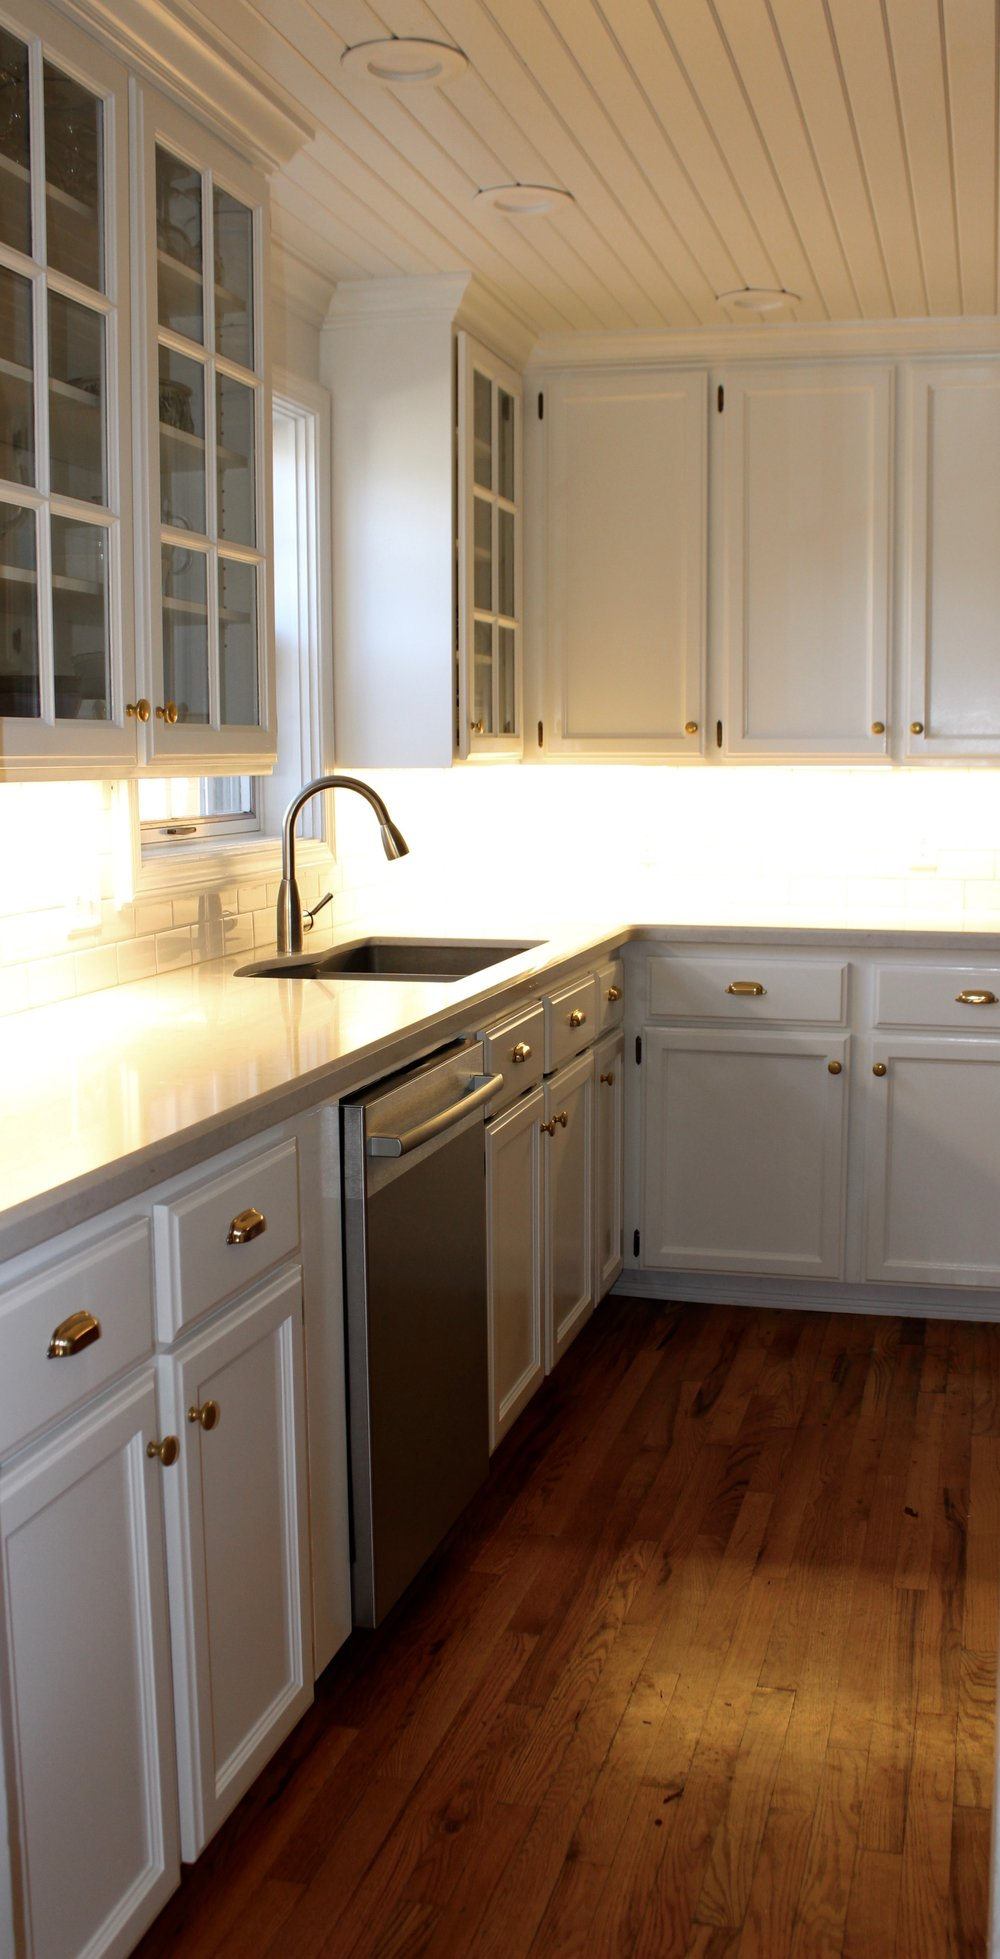 Reitz Builders Verde kitchen remodel 1.jpg